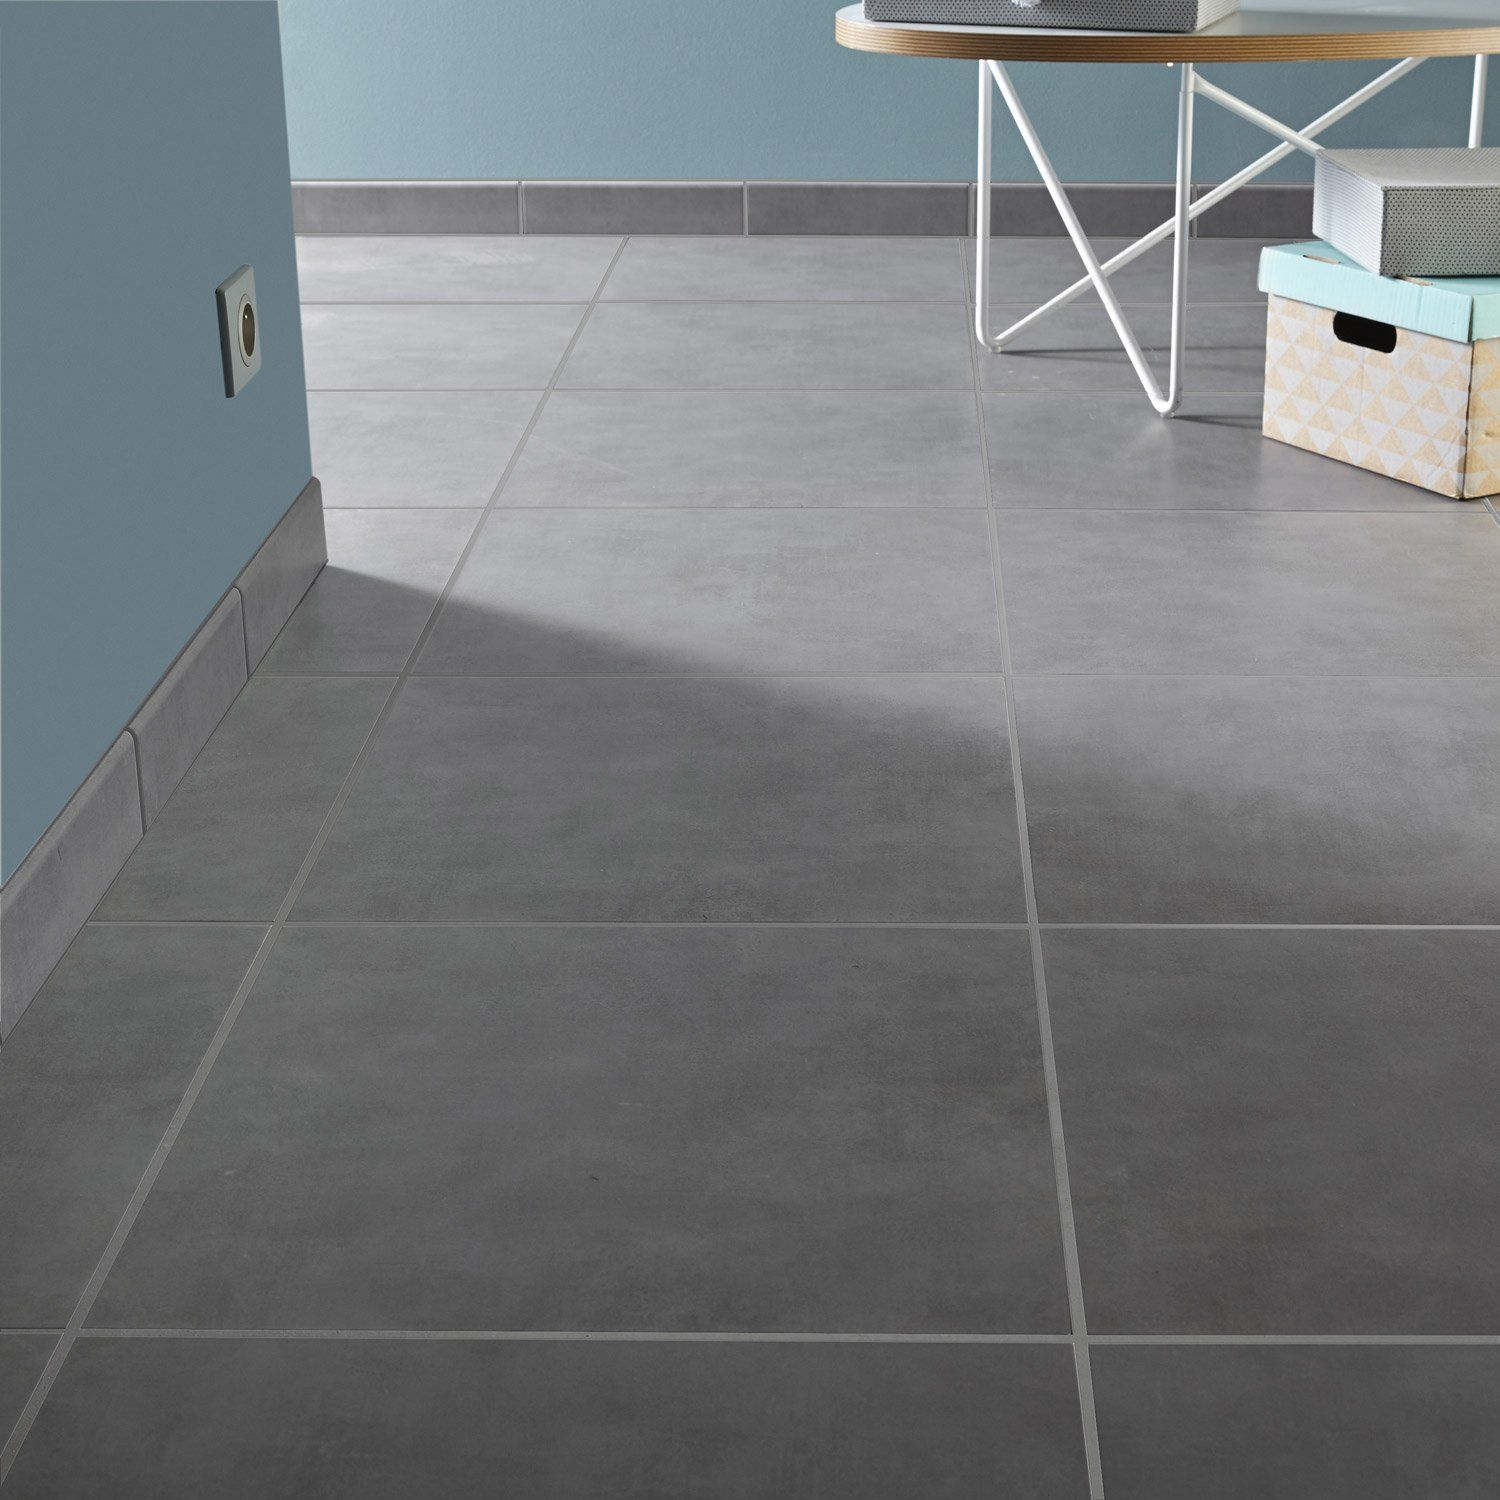 Carrelage int rieur kiosque aero en gr s gris poivr 45 for Carrelage gris interieur